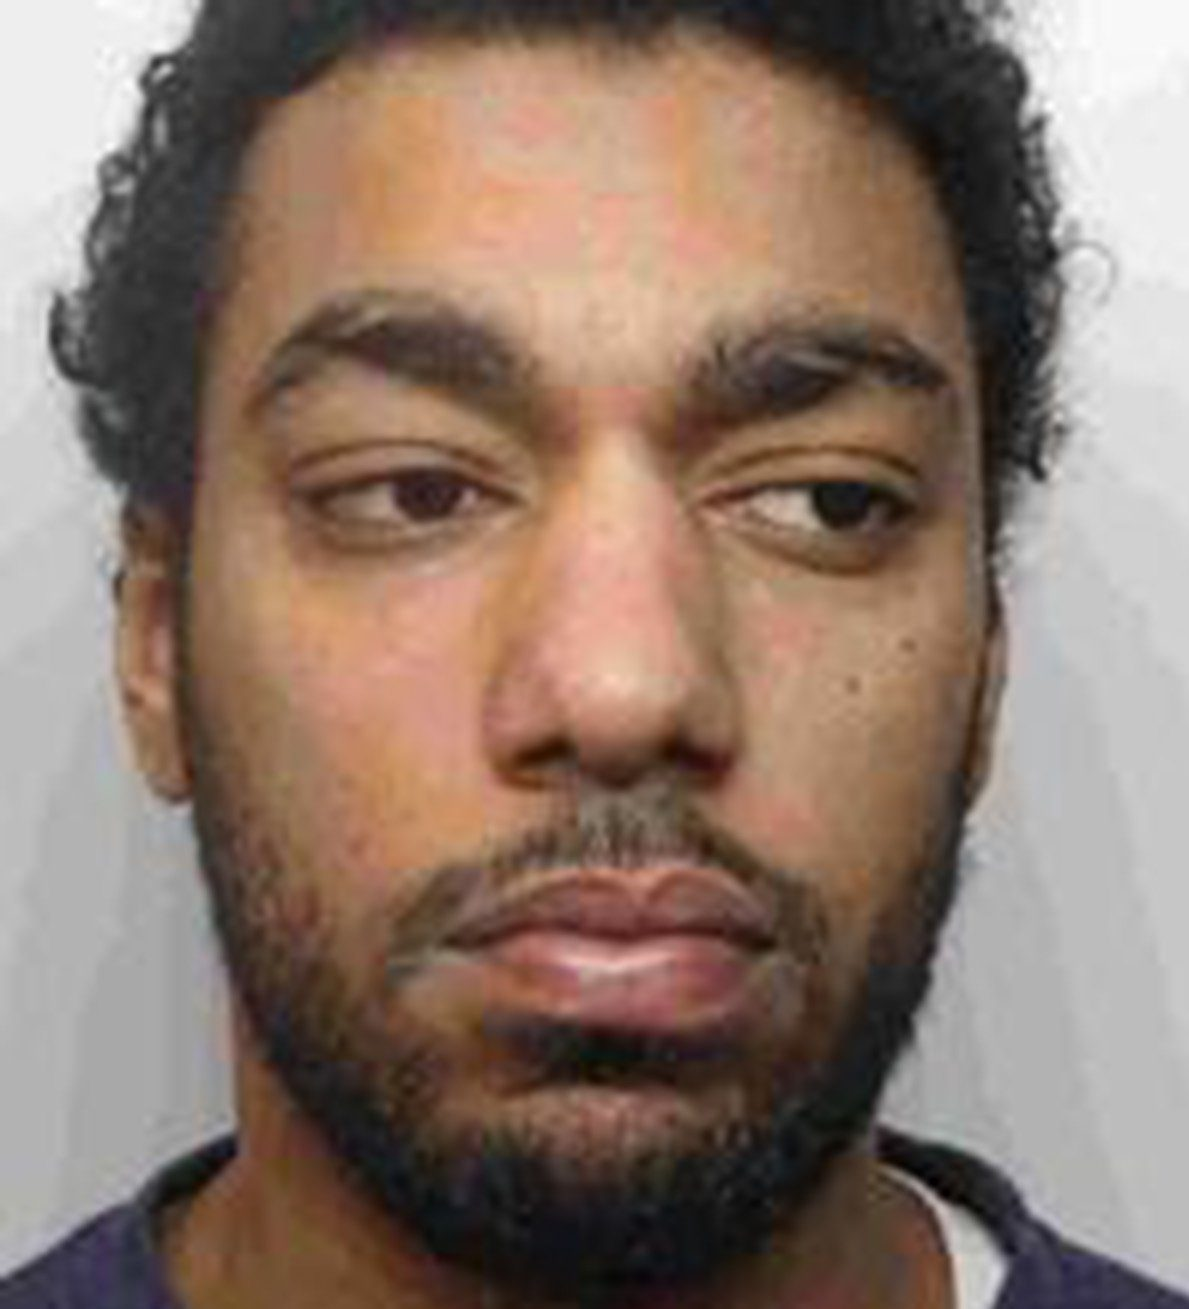 Police searching for man in Leeds in connection with alleged attempted murder and sexual assaultSamuel FortesWest Yorkshire Police